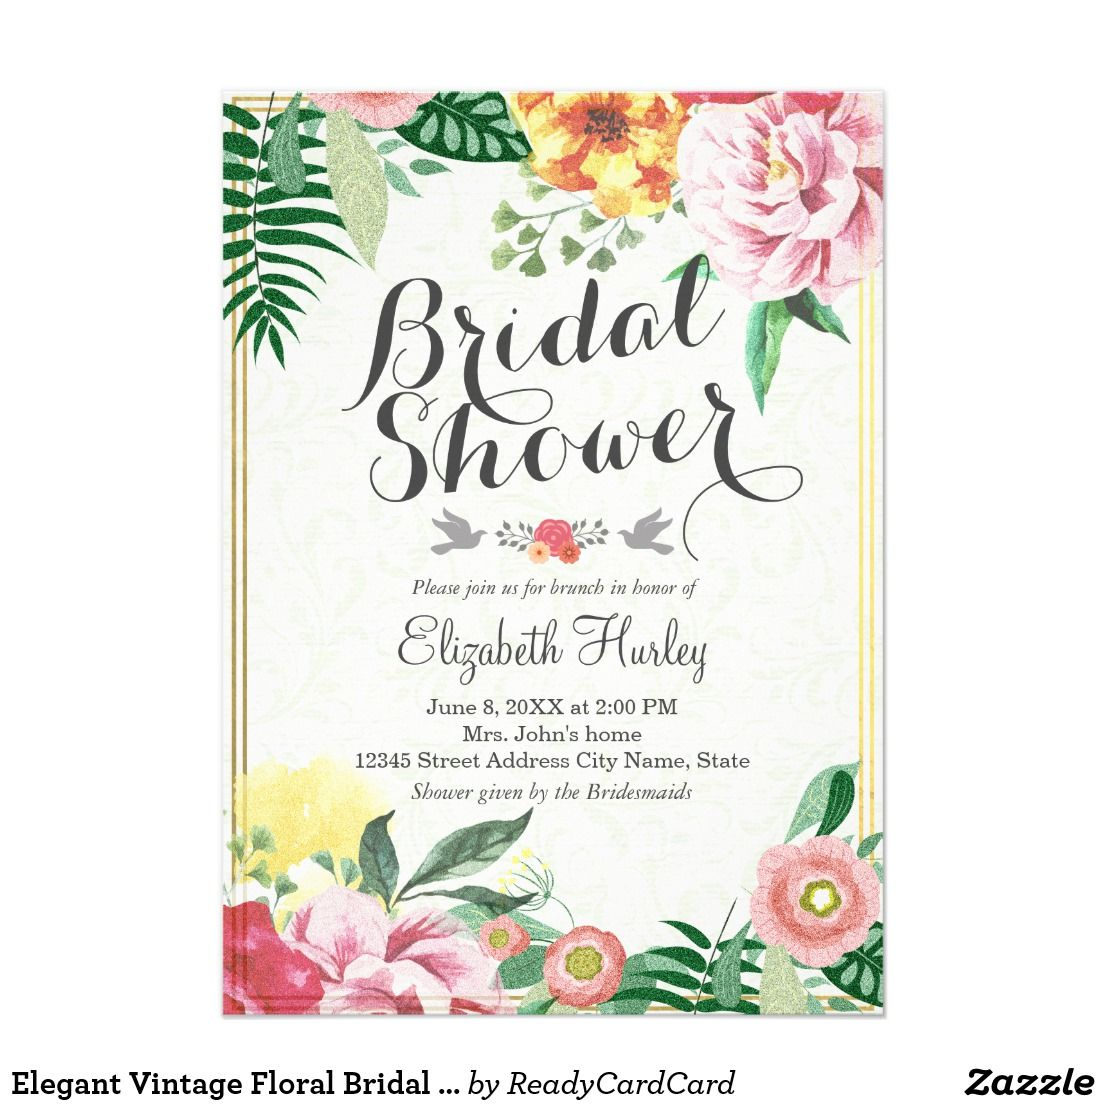 Elegant vintage floral bridal shower invitations wedding elegant vintage floral bridal shower invitations elegant vintage wedding bridal shower floral formal invitation card a perfect design for your big day stopboris Image collections